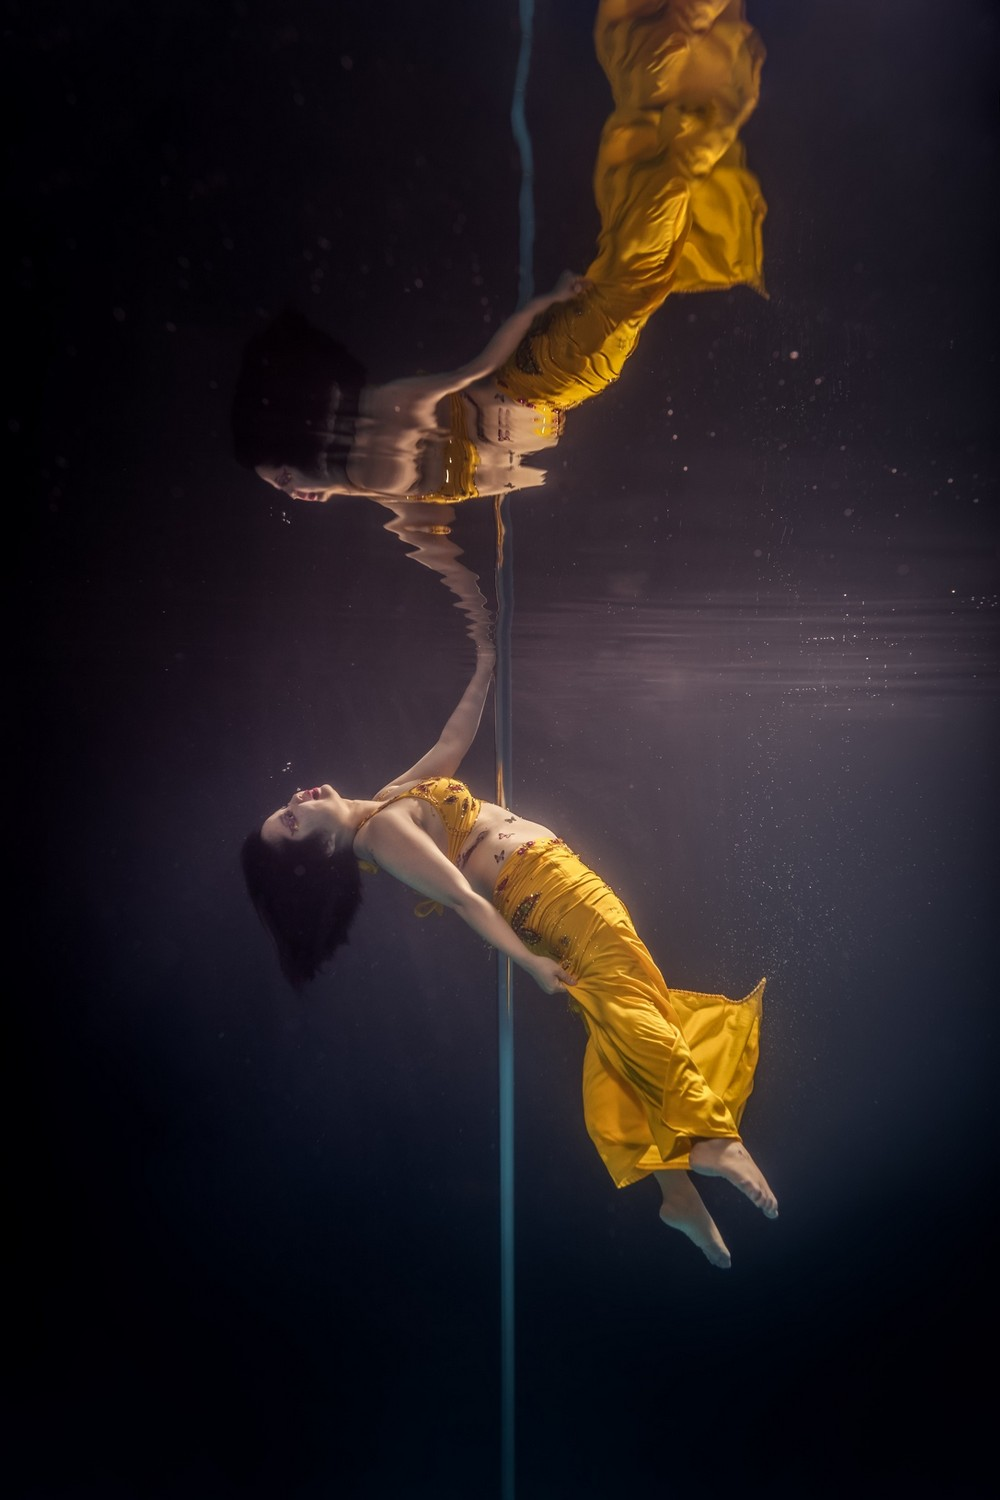 Underwater Pole Dancing